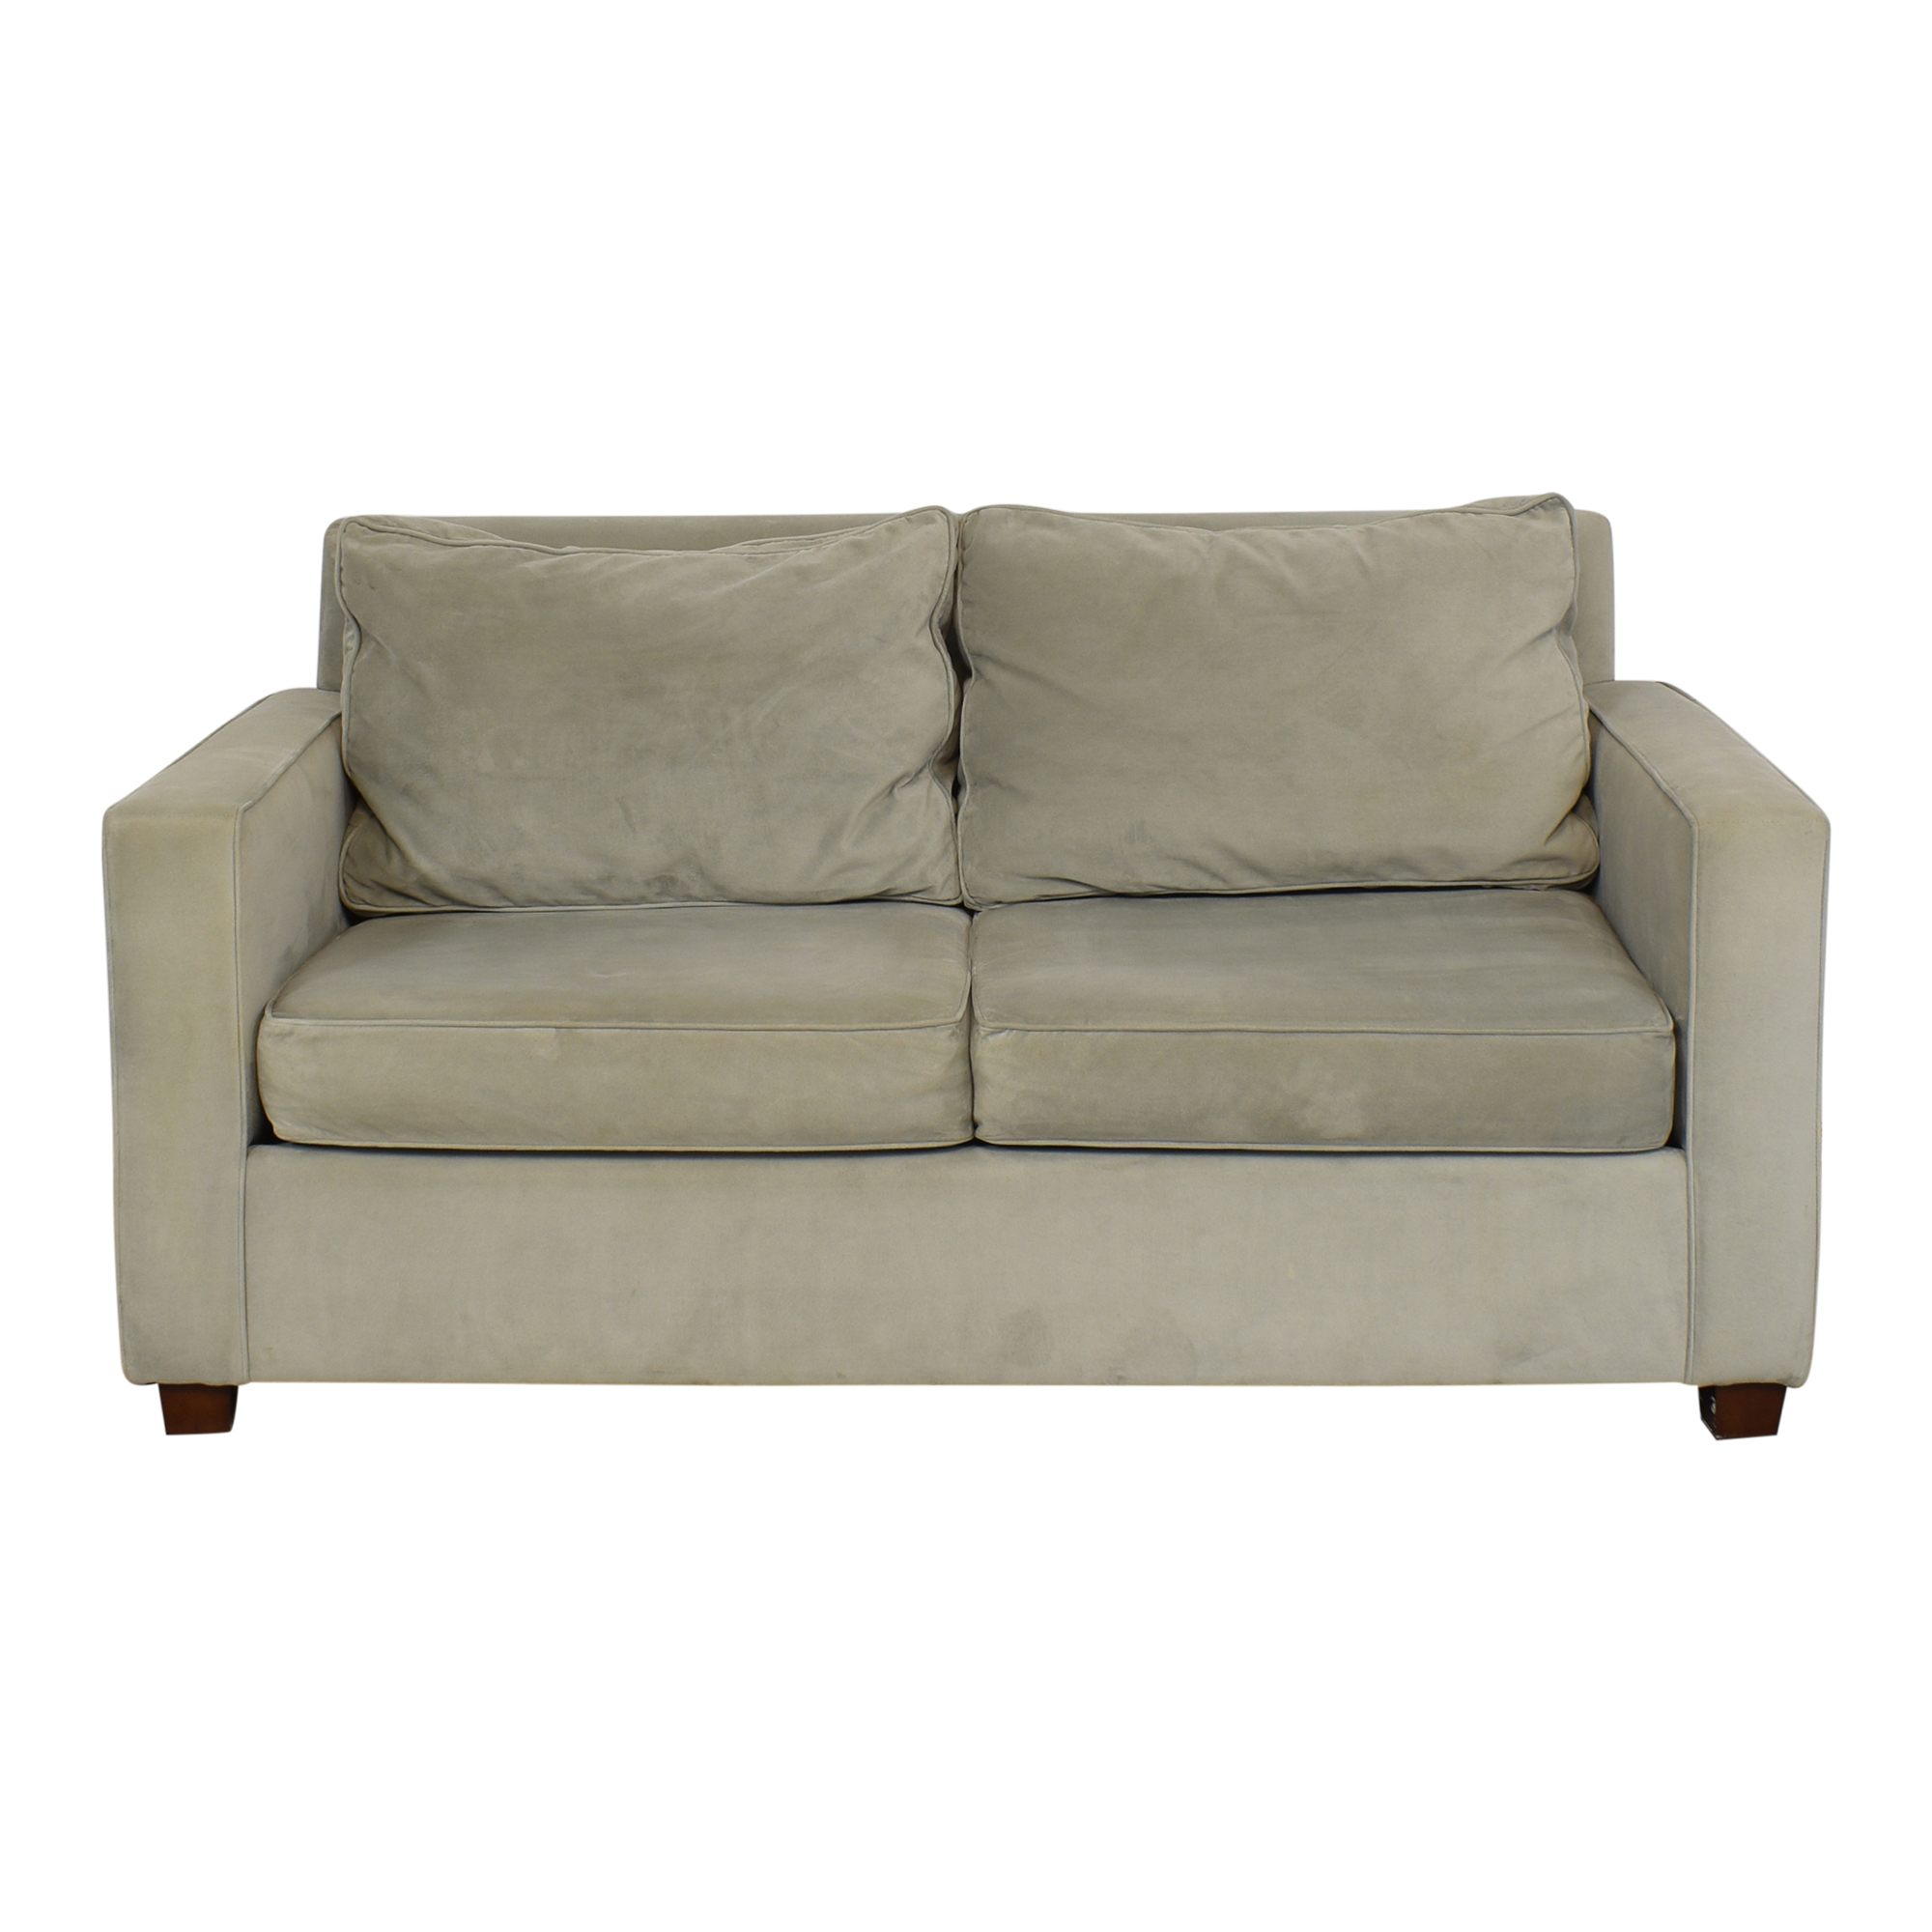 shop West Elm West Elm Loveseat online